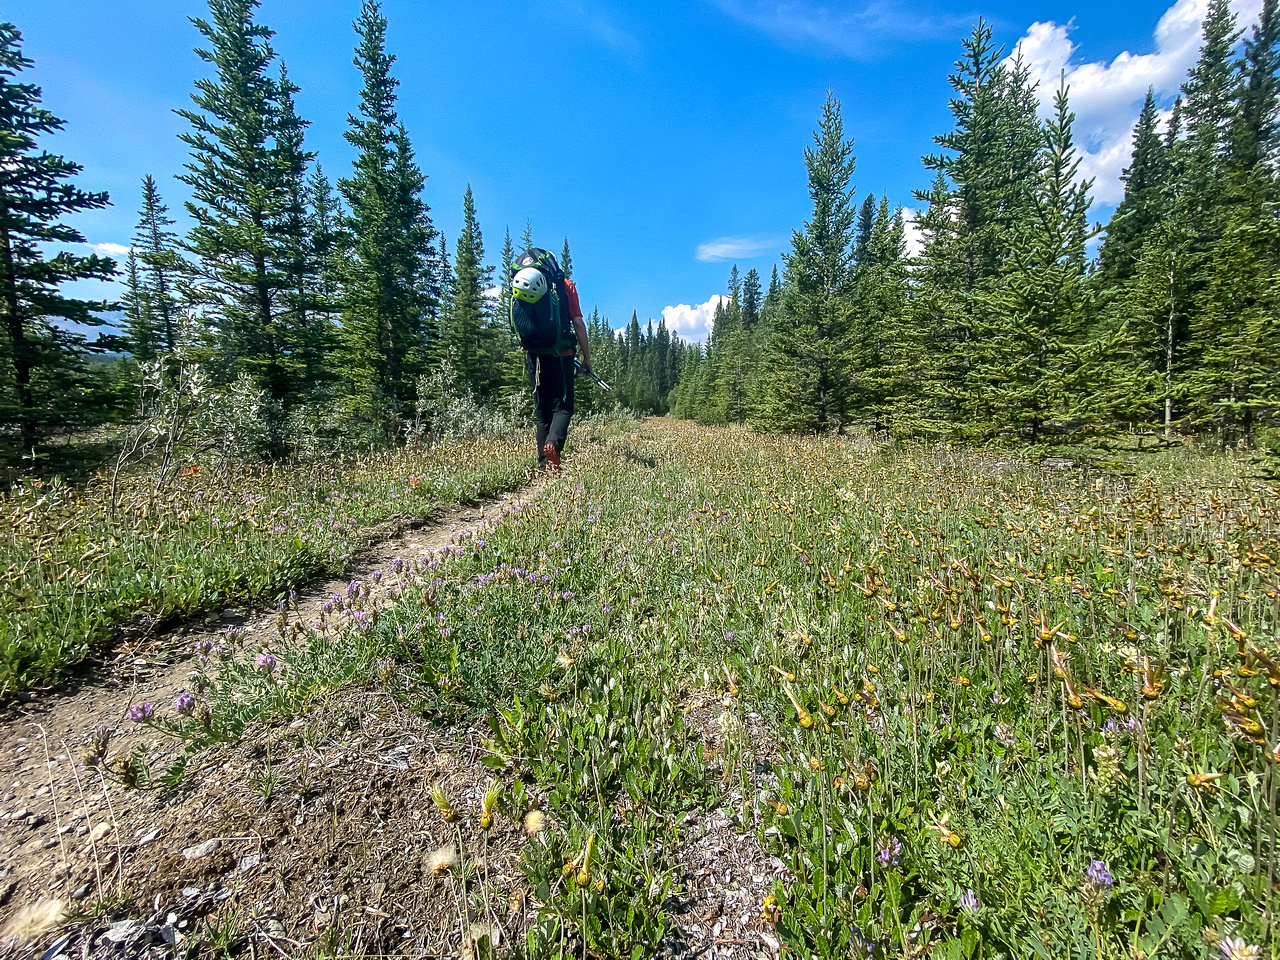 Hiking the Red Deer River / Cascade fire road Trail.